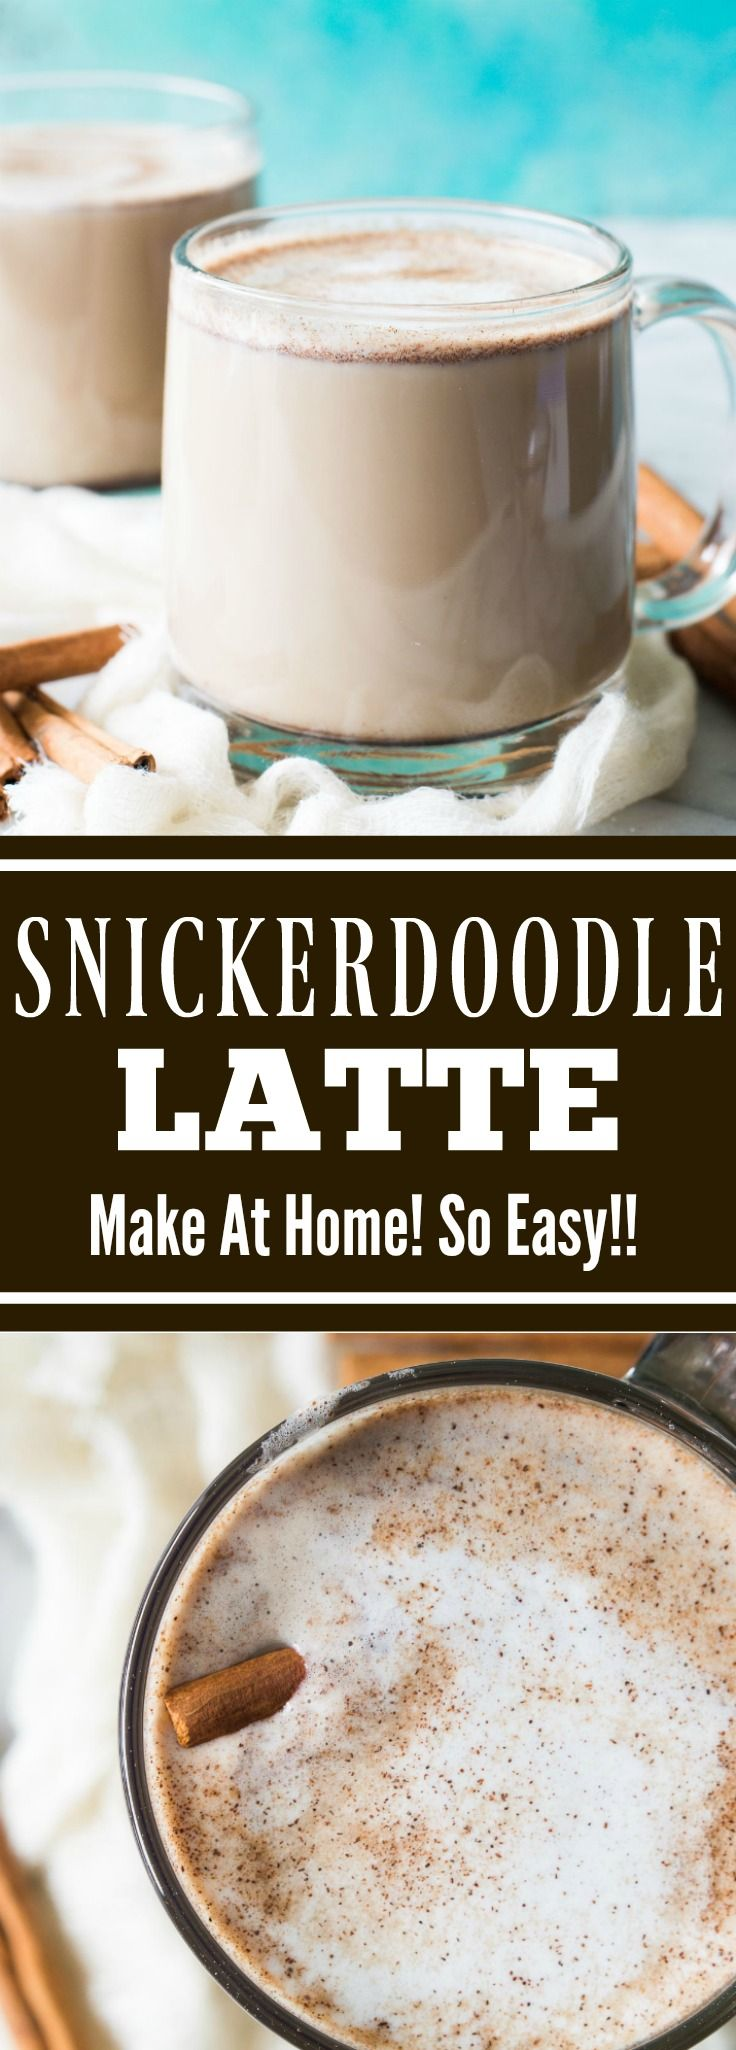 Snickerdoodle Latte - loaded with cinnamon and hints of brown sugar.  Plus it's easily made at home!!  No fancy equipment needed!